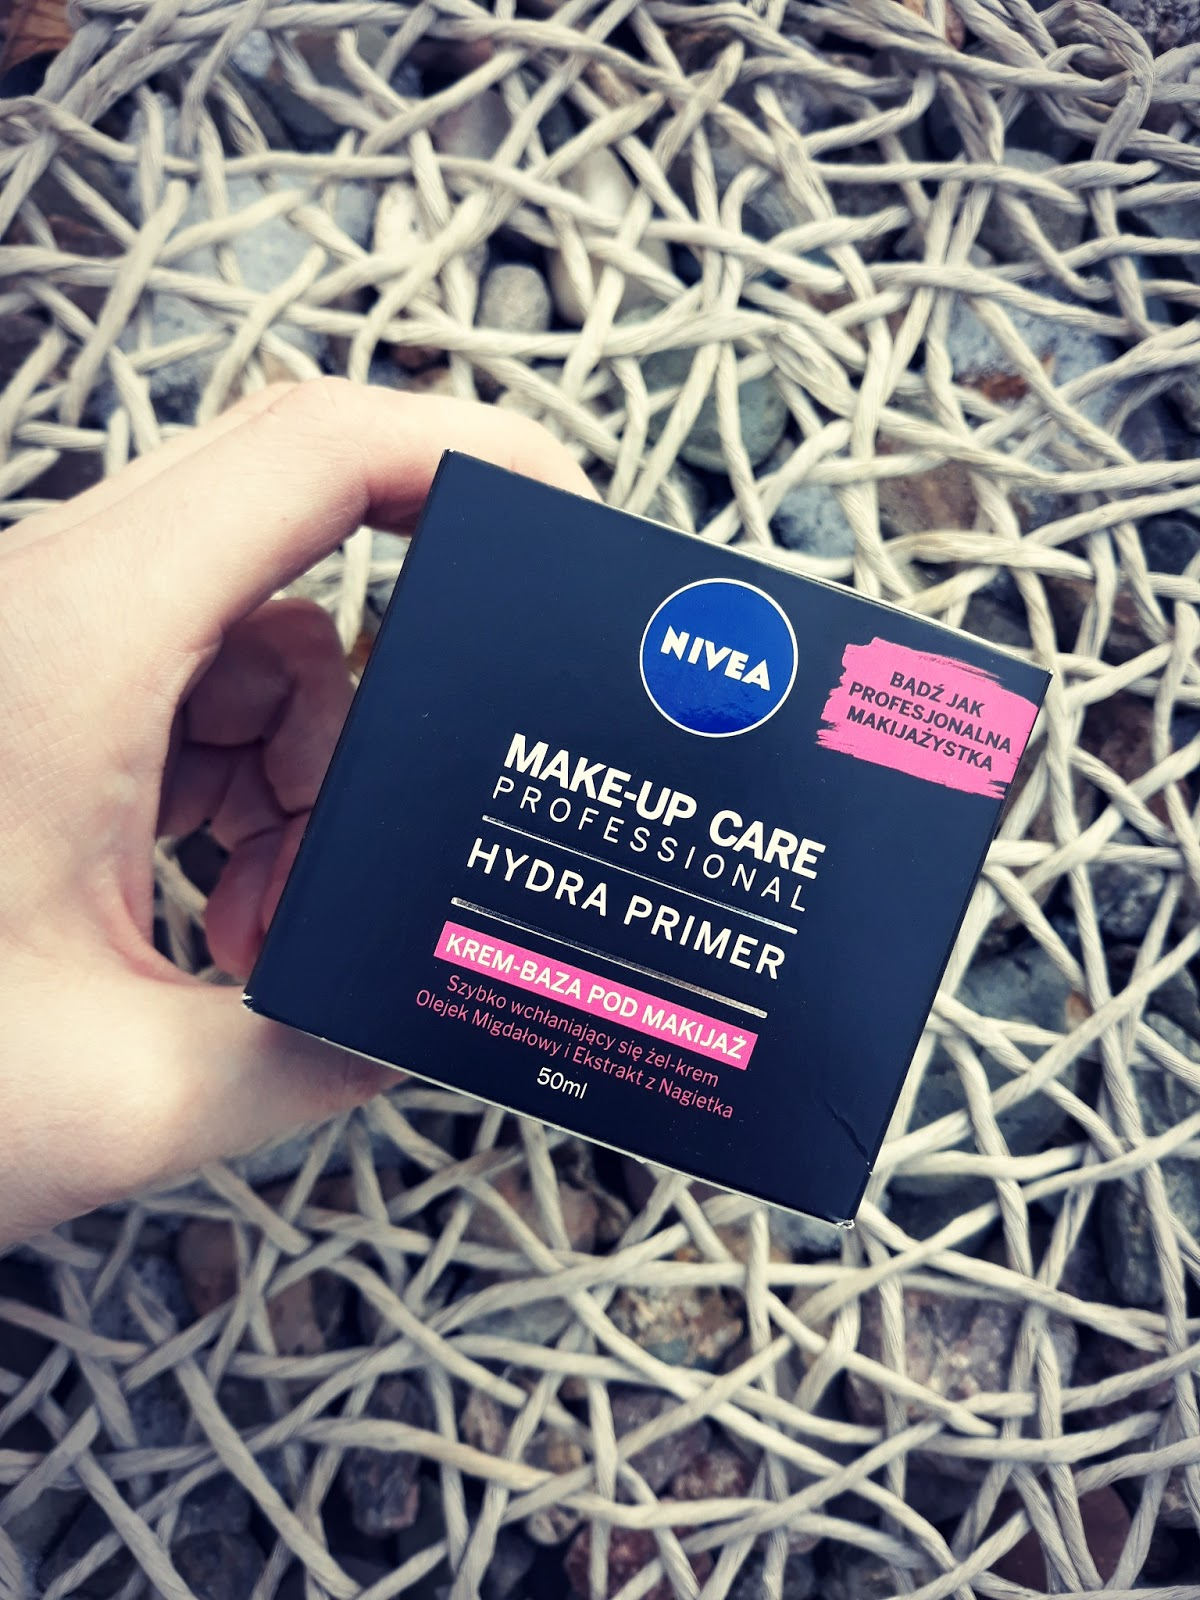 Make-up care Professional Hydra Primer Nivea